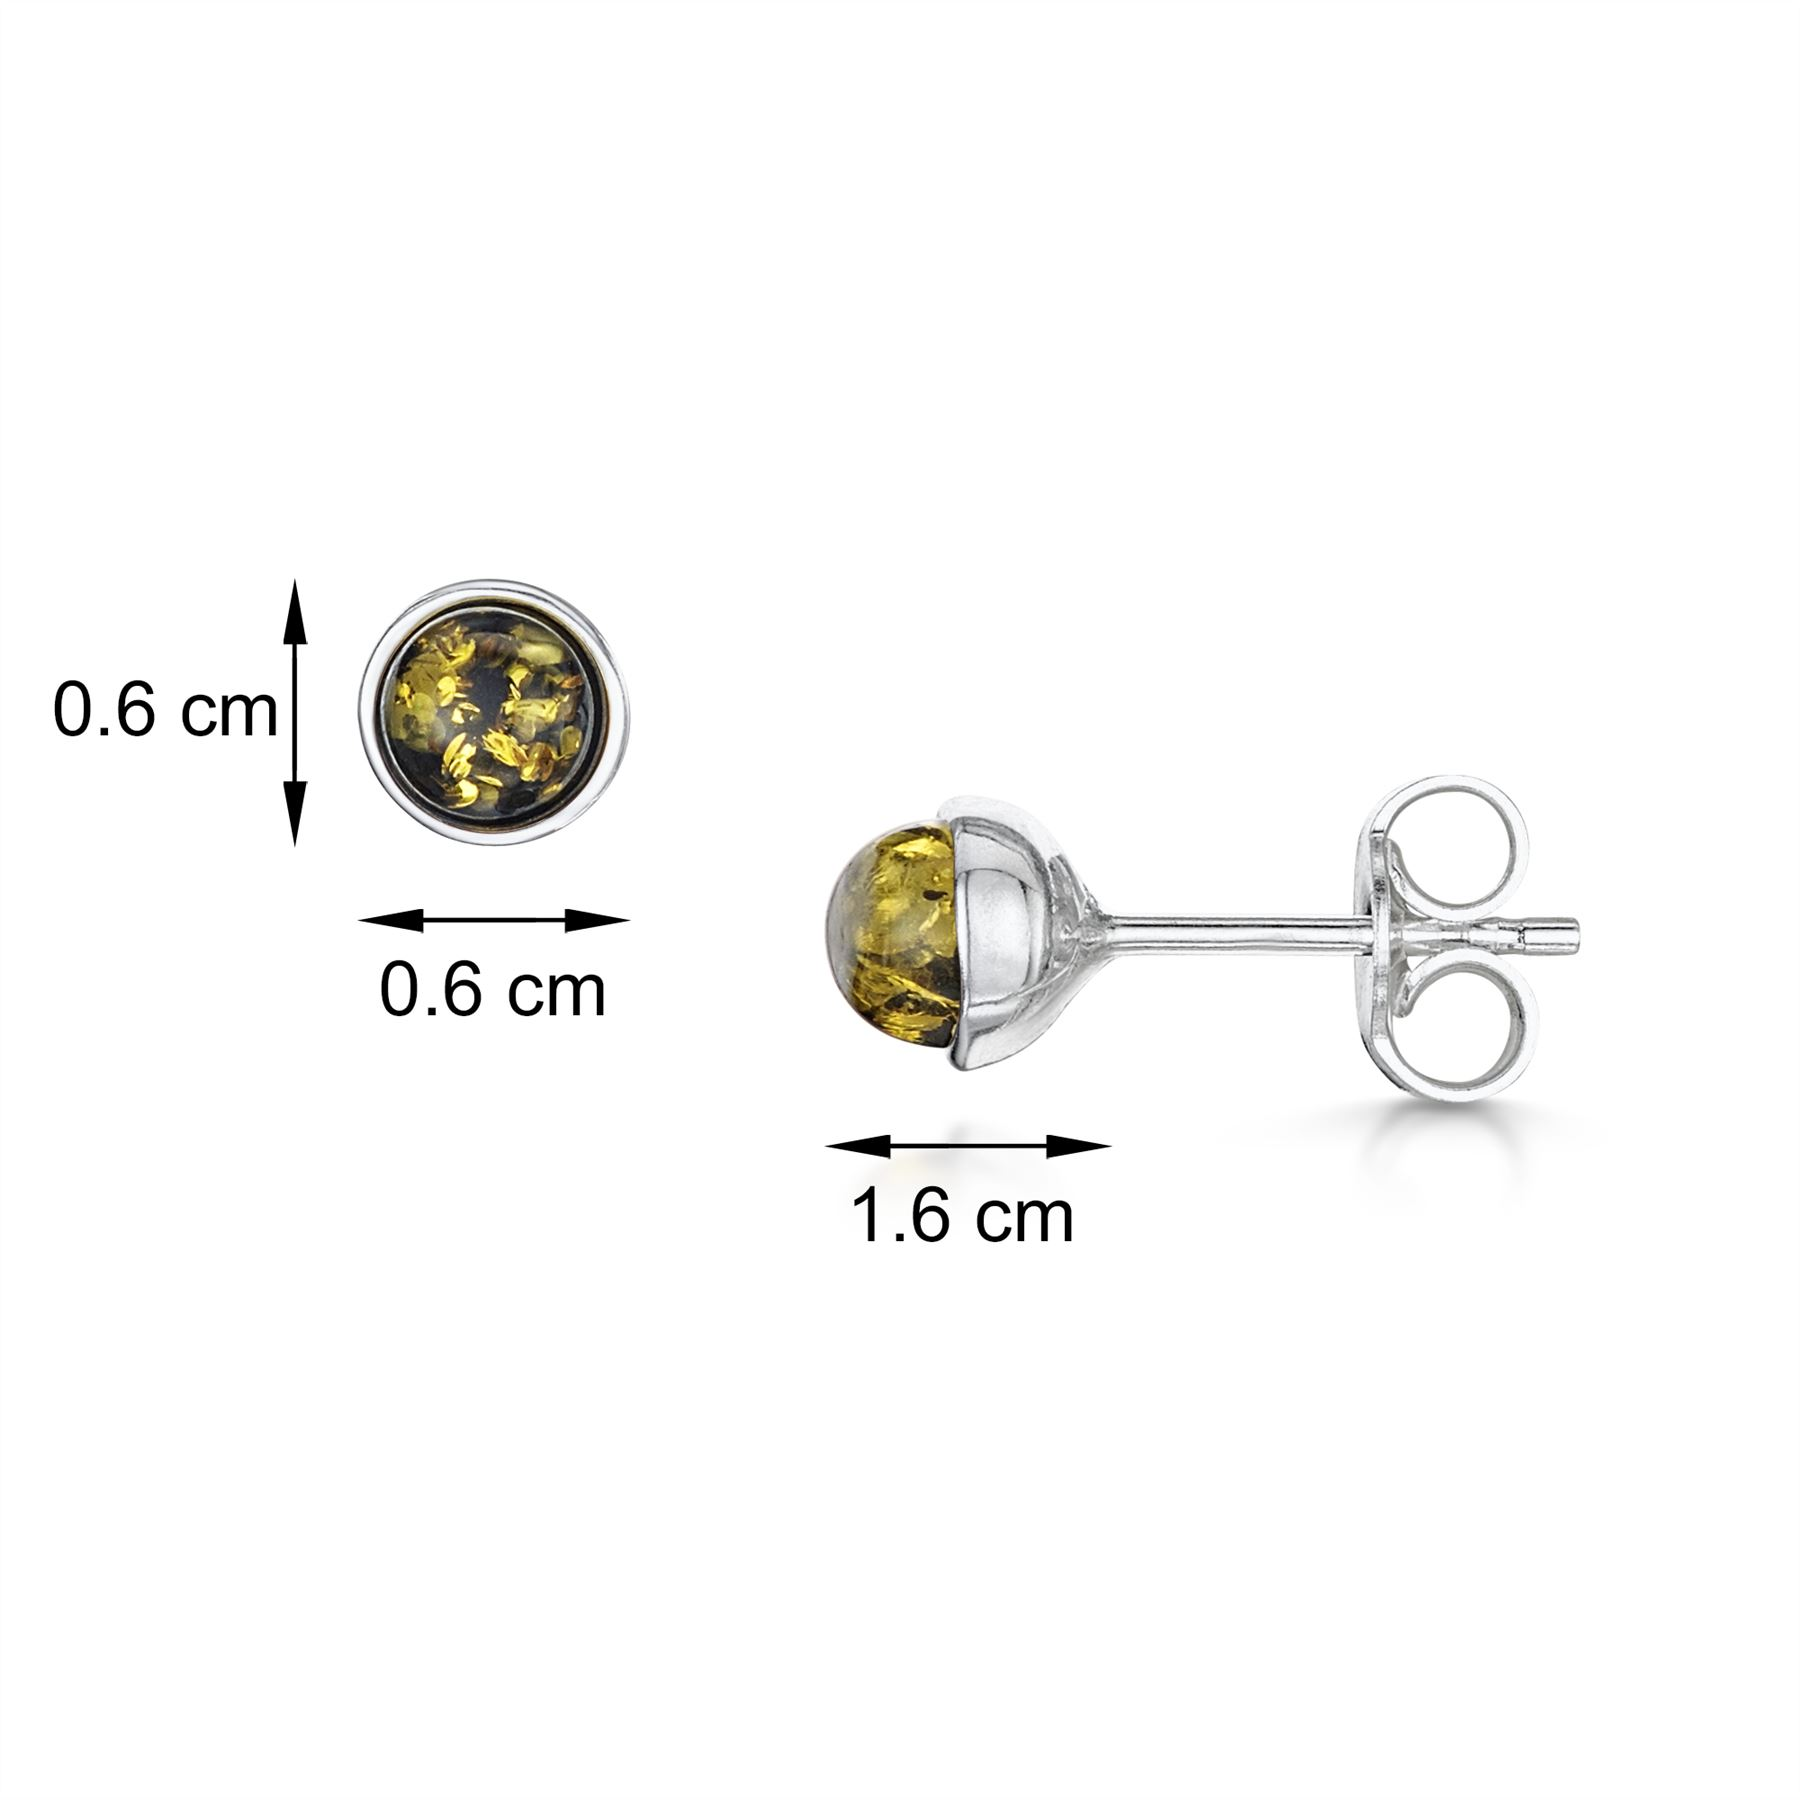 Amberta-Genuine-925-Sterling-Silver-Earrings-with-Natural-Baltic-Amber-Gemstone thumbnail 96